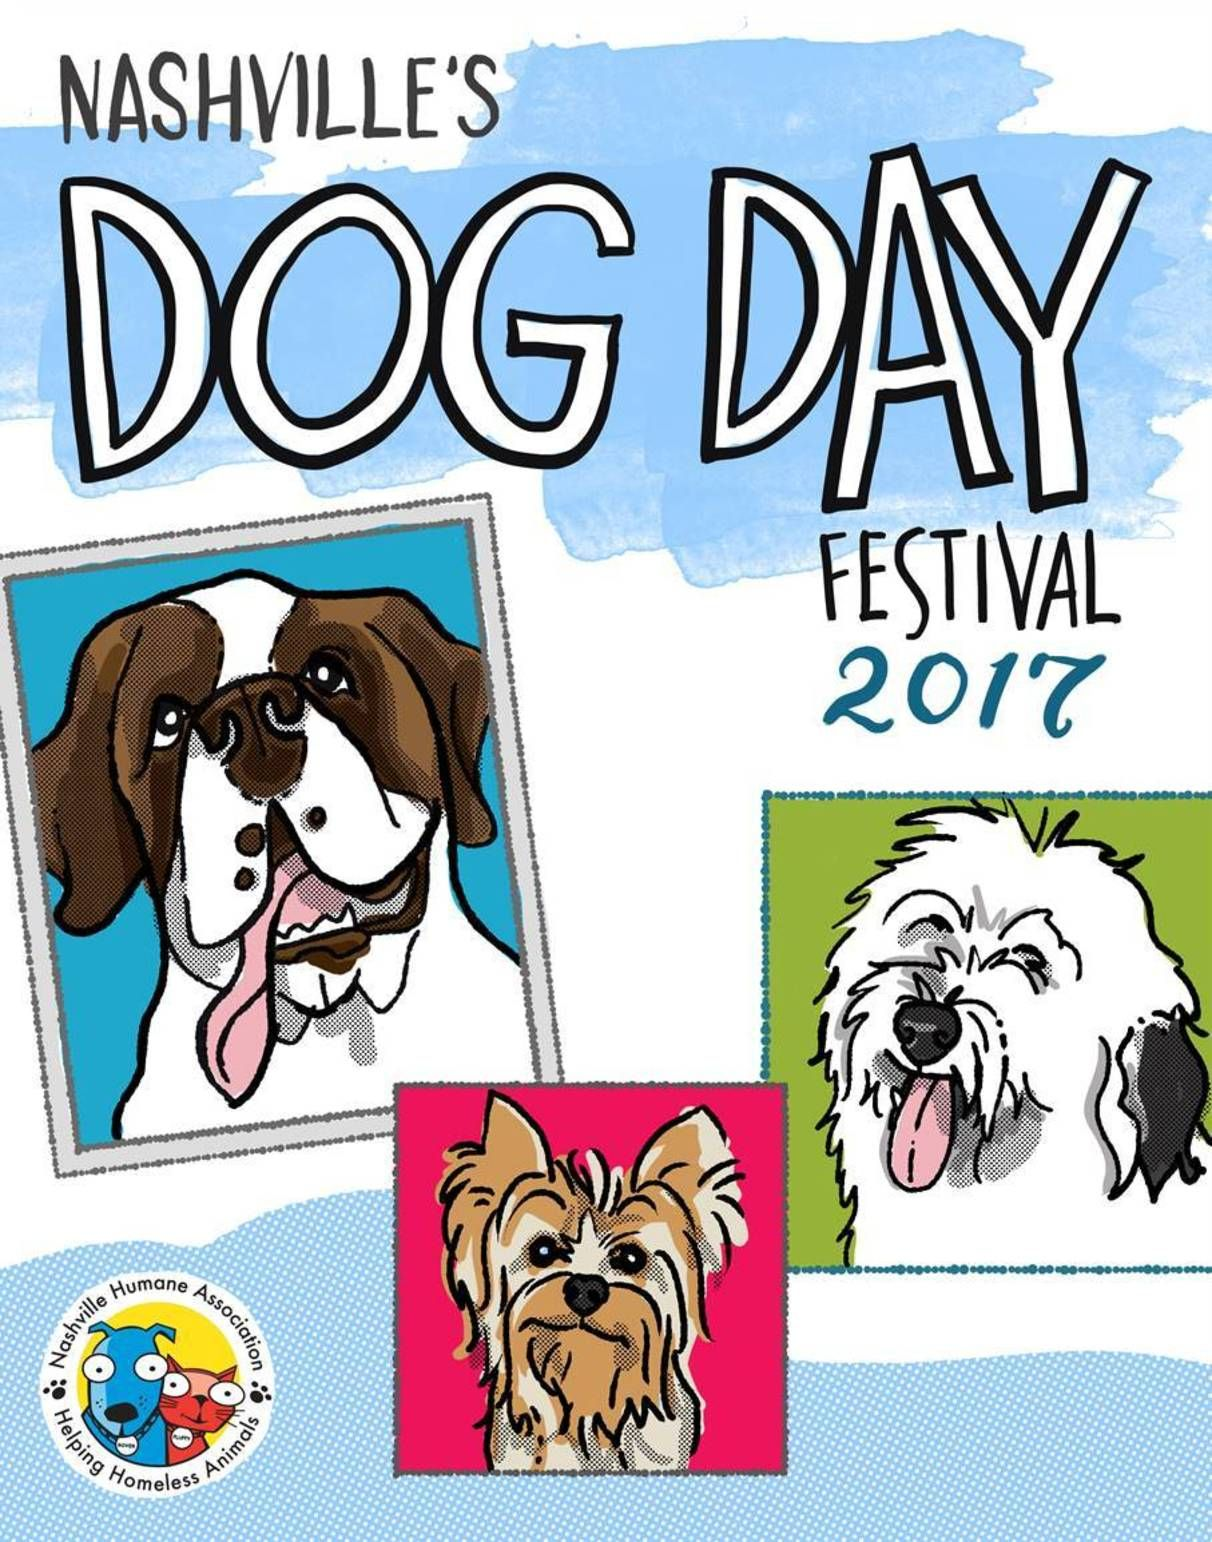 We cannot wait for Dog Day again this year, benefiting the